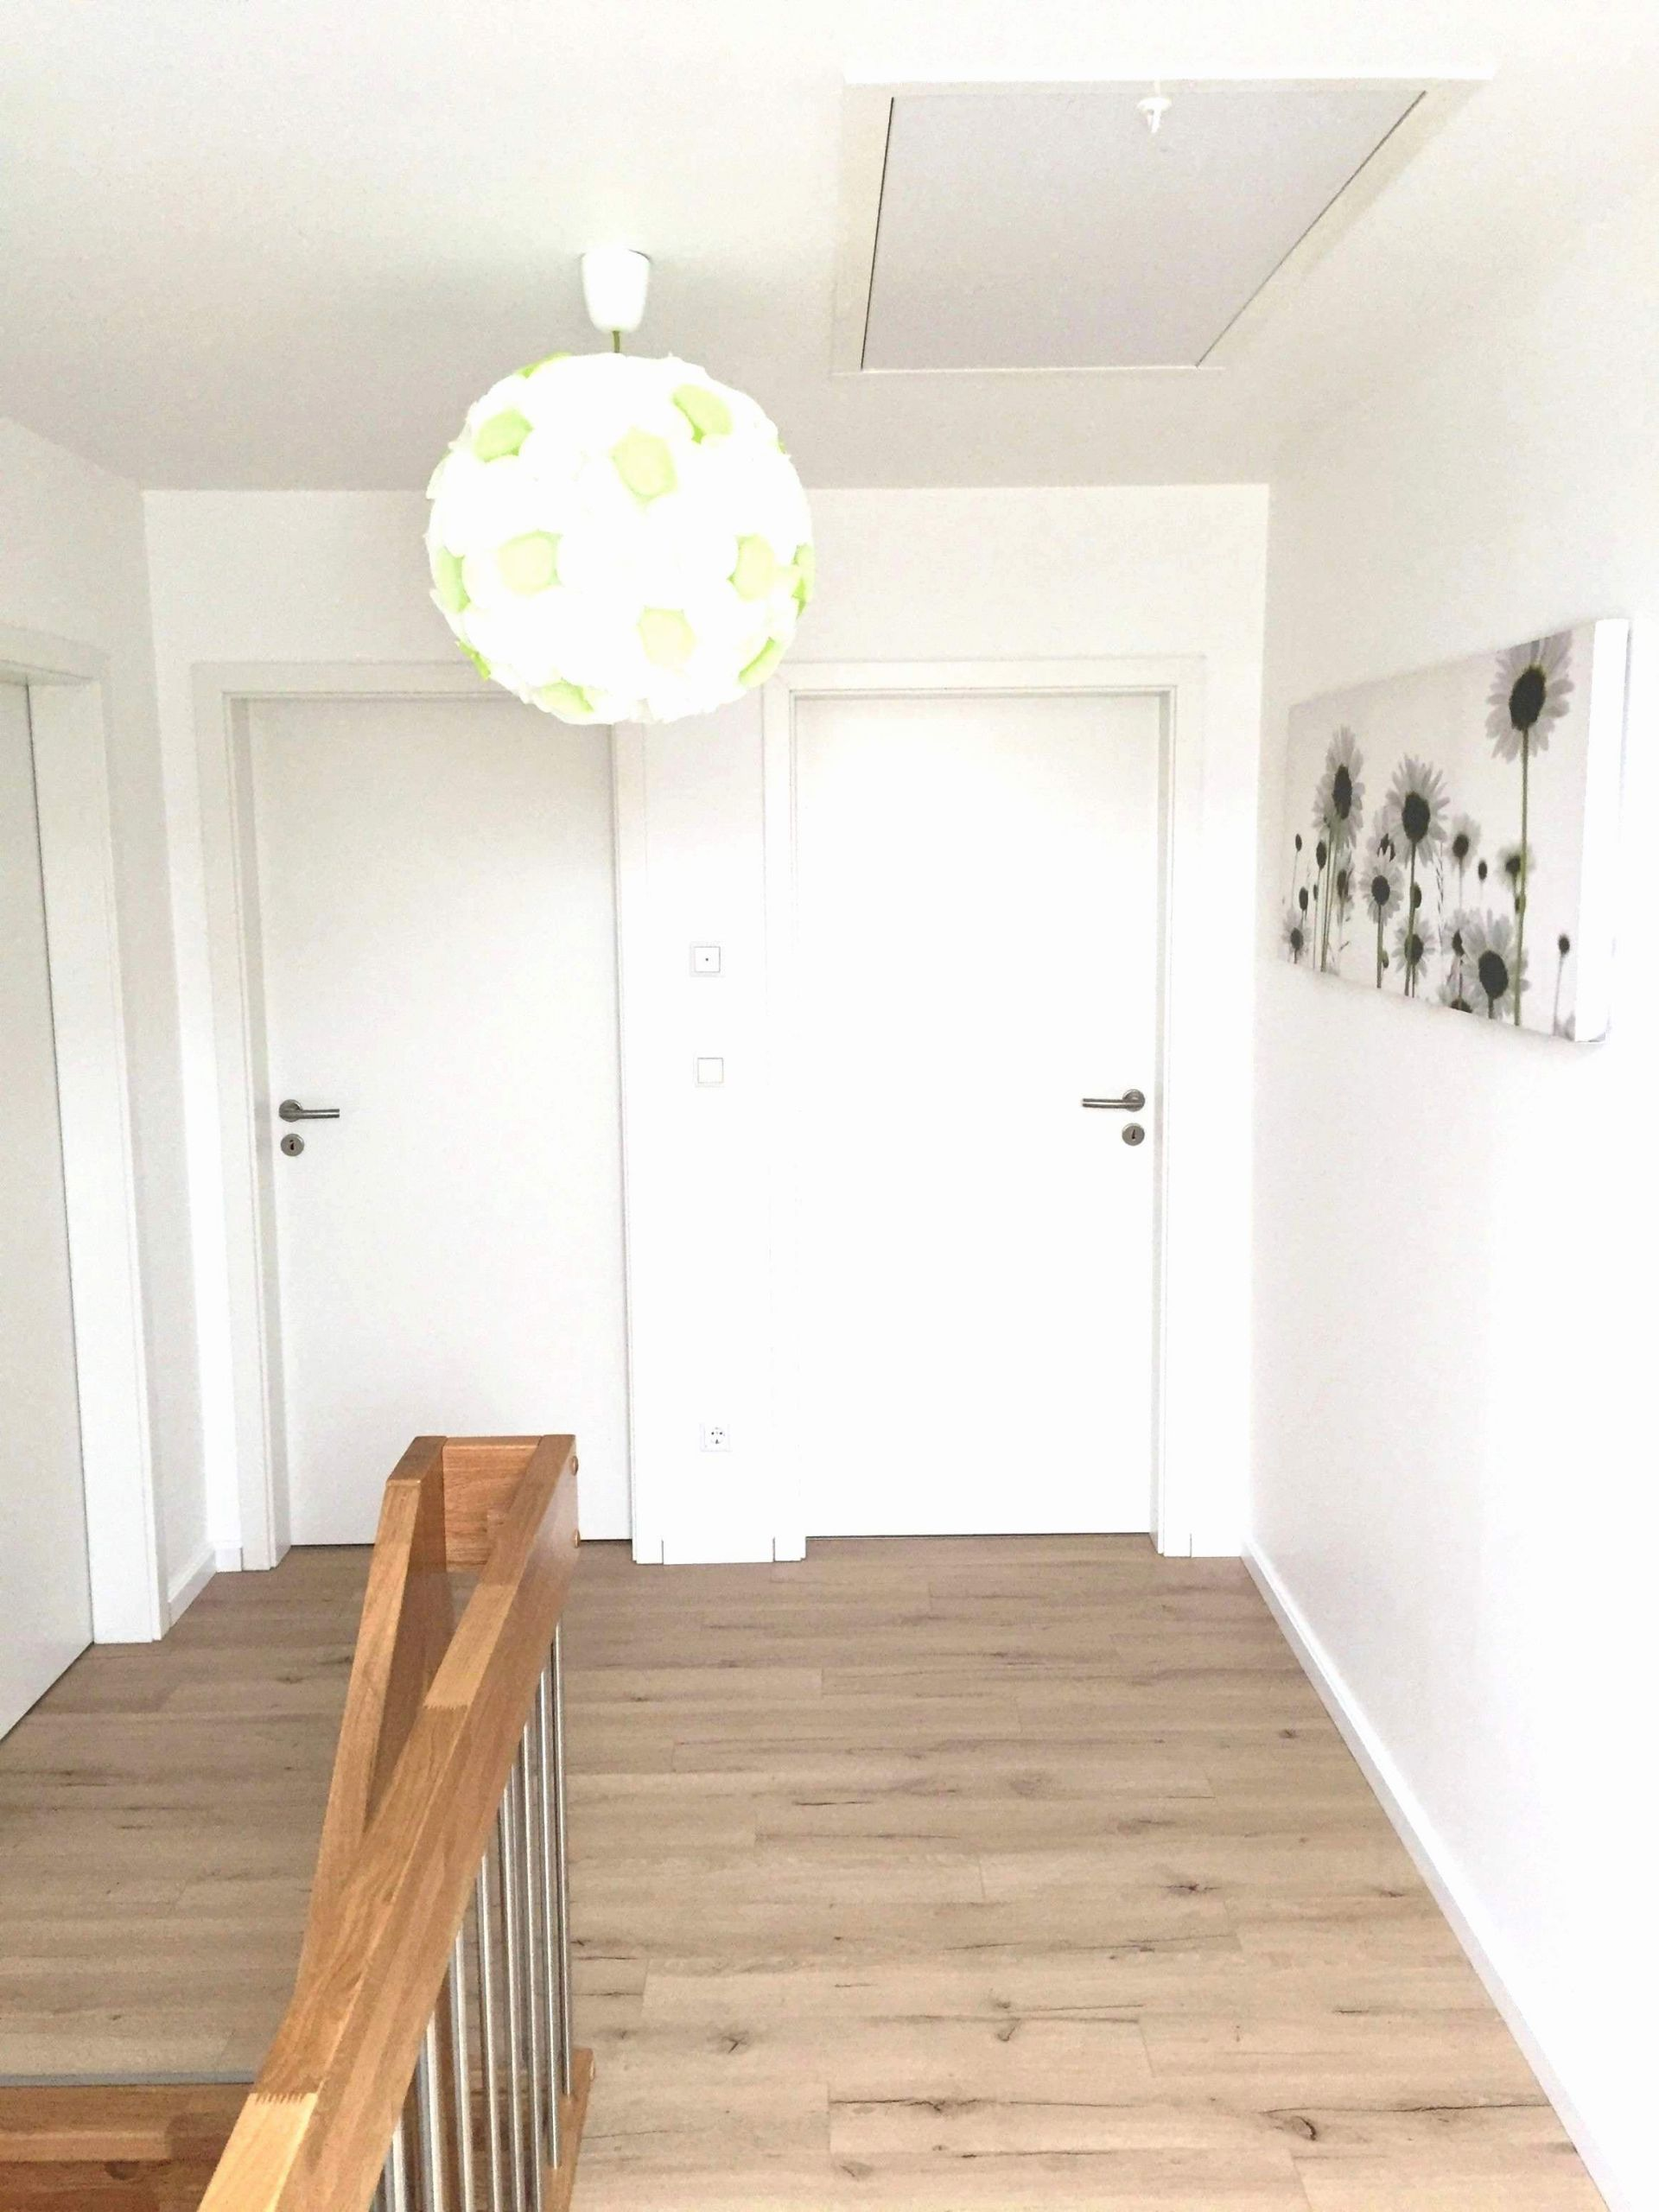 wohnzimmer lampe dimmbar genial led deckenleuchte wohnzimmer dimmbar frisch led lampen dimmbar of wohnzimmer lampe dimmbar 1